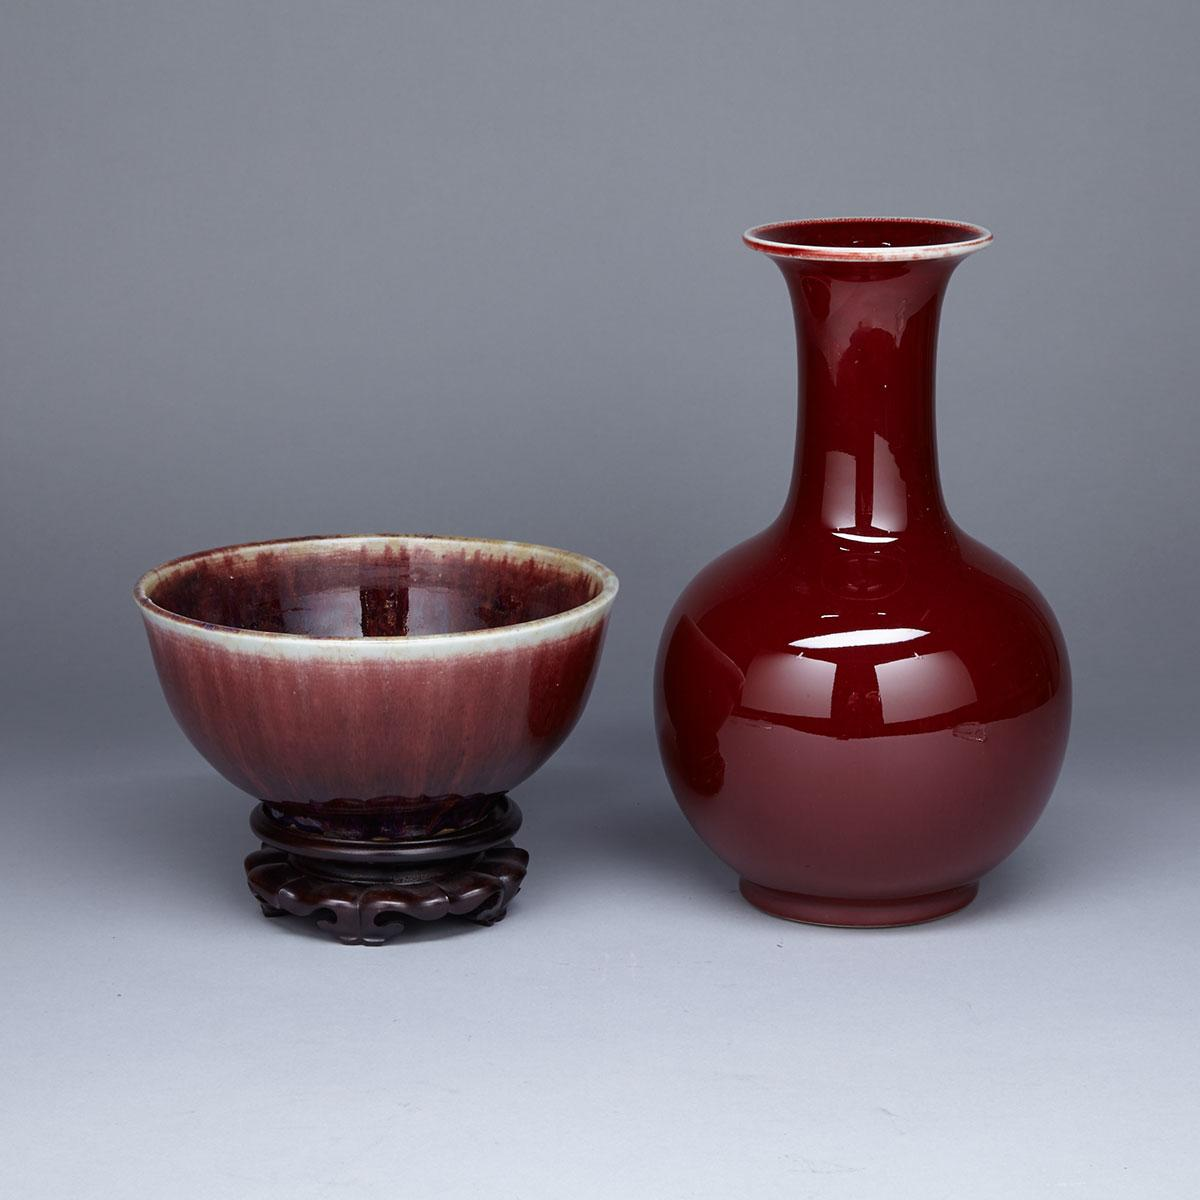 Oxblood Glazed Bottle Vase, Jingdezhen Mark